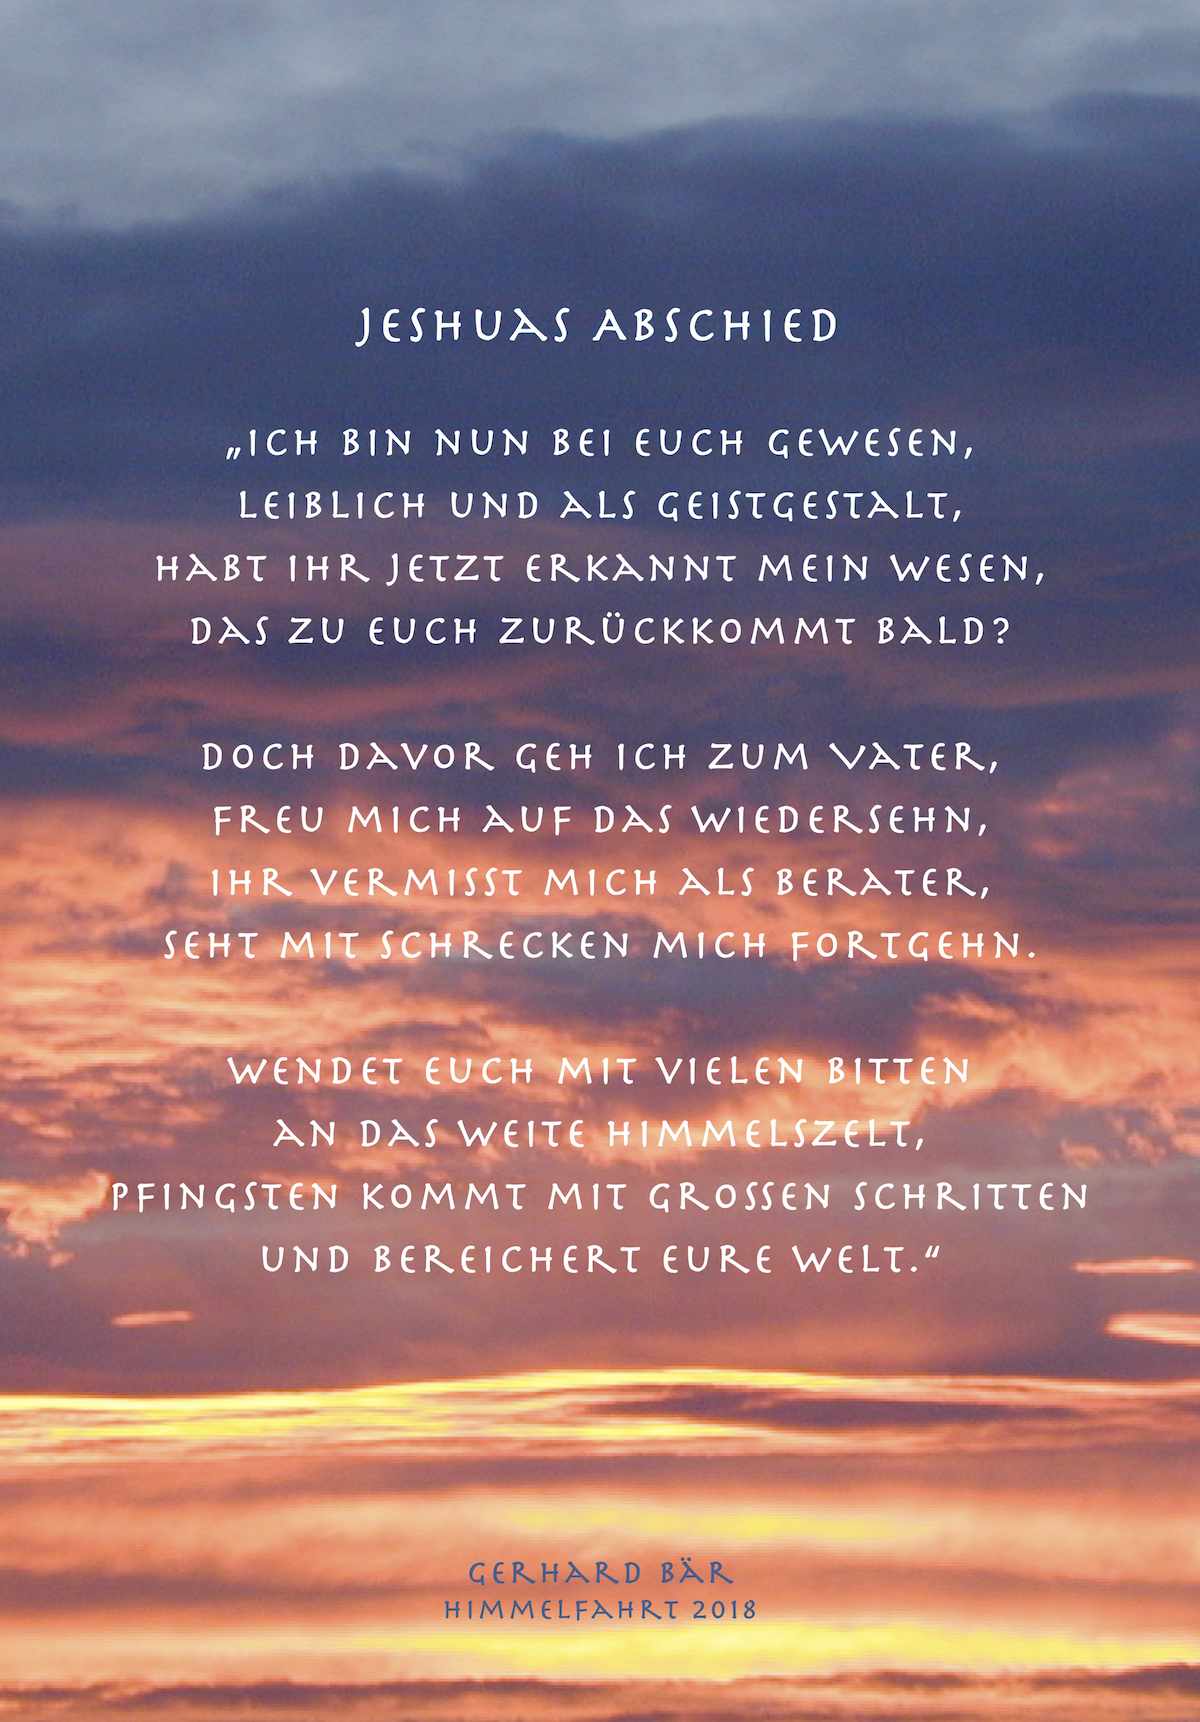 Jeshuas Abschied comp